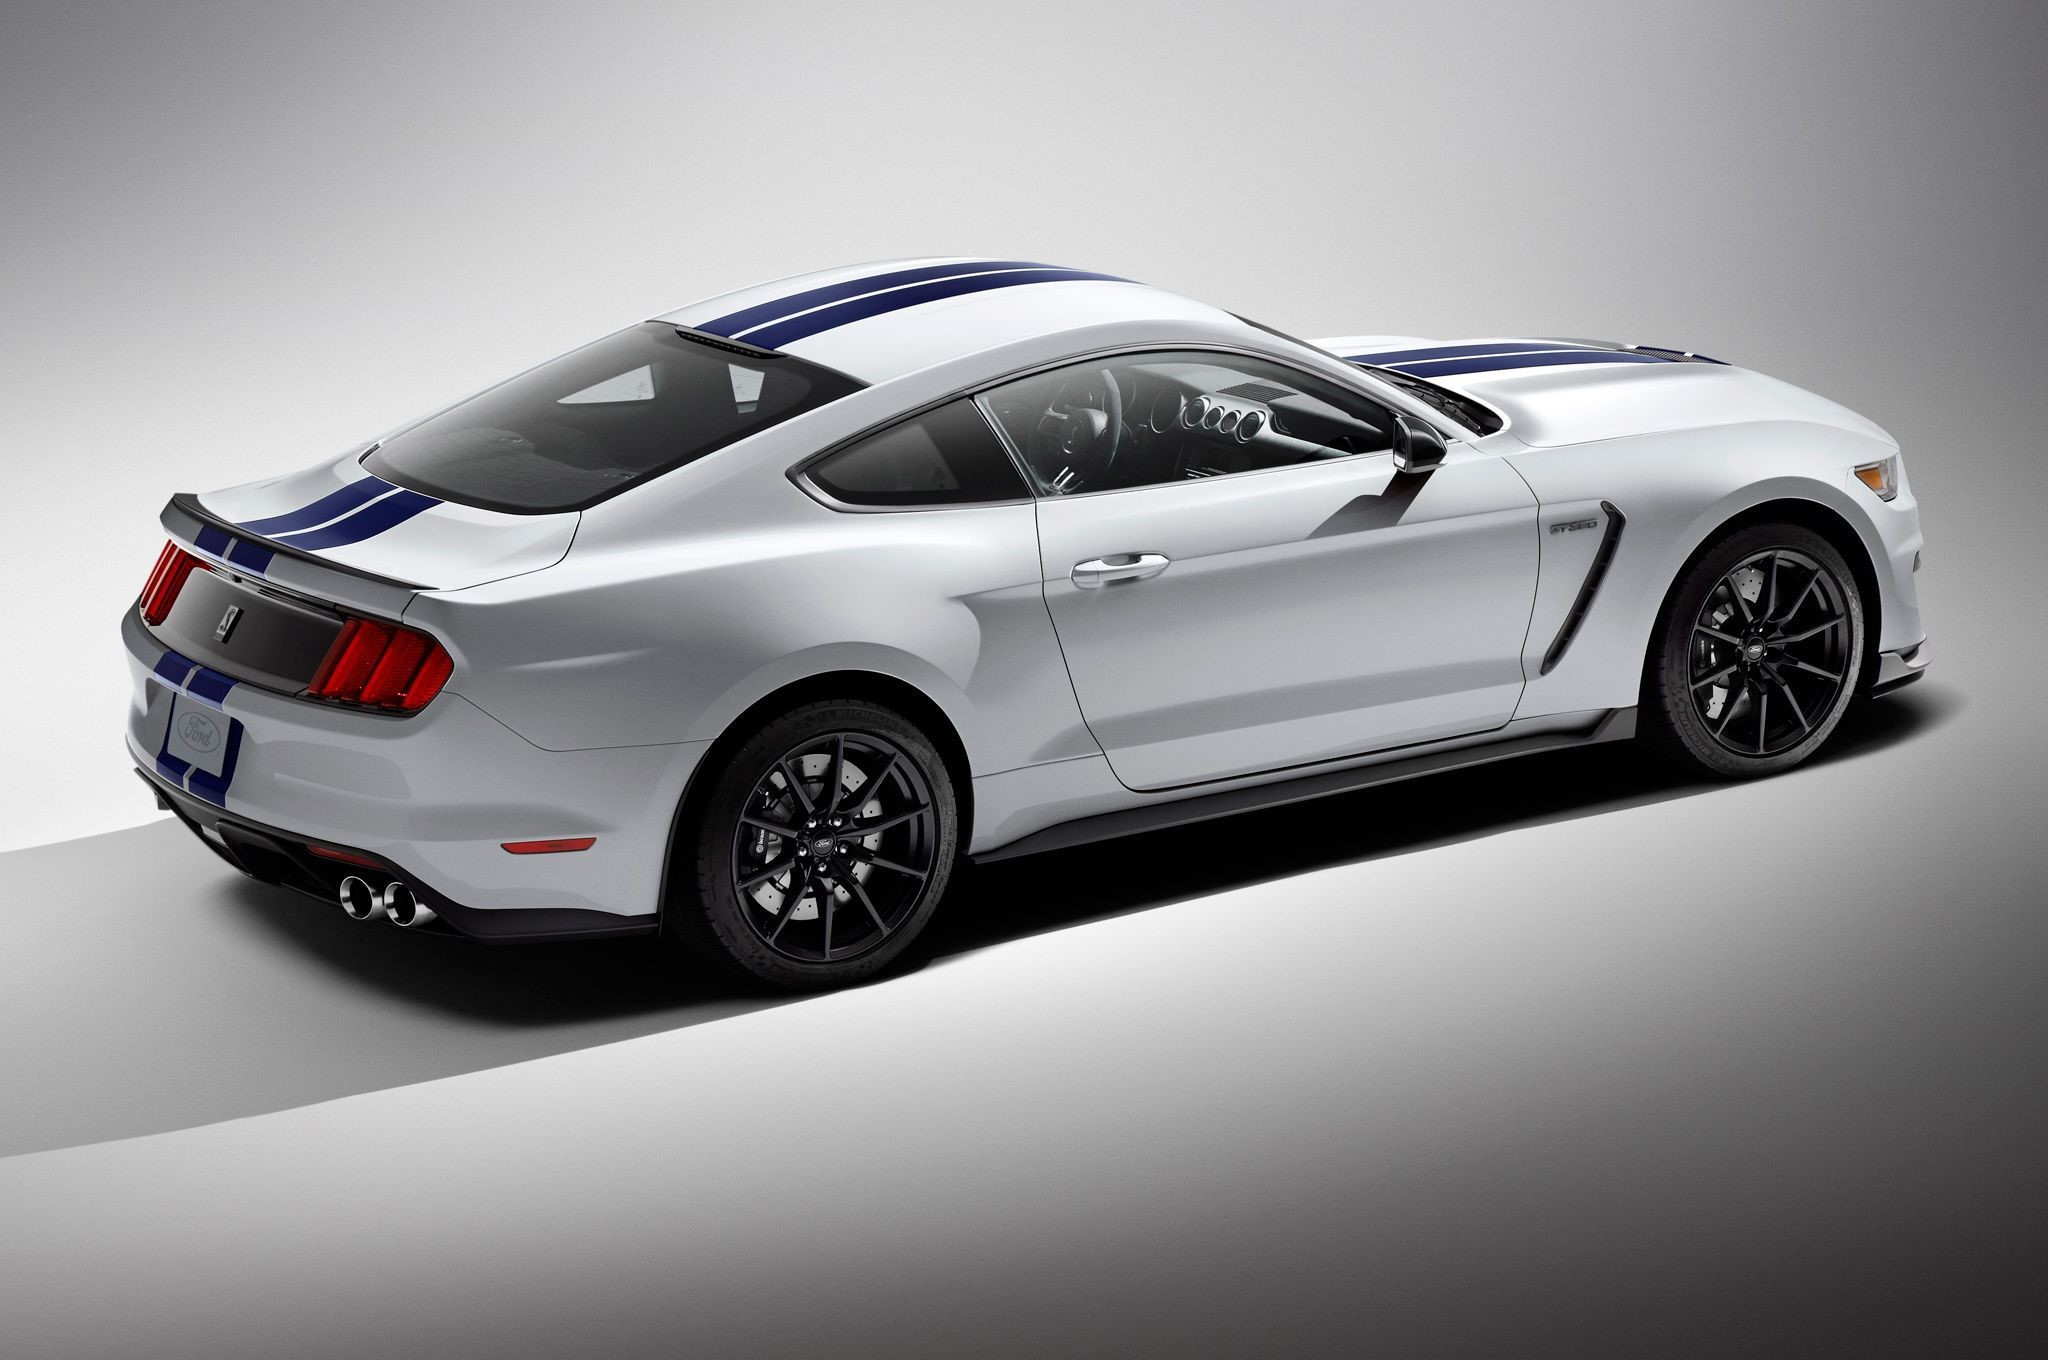 Ford Mustang Background image